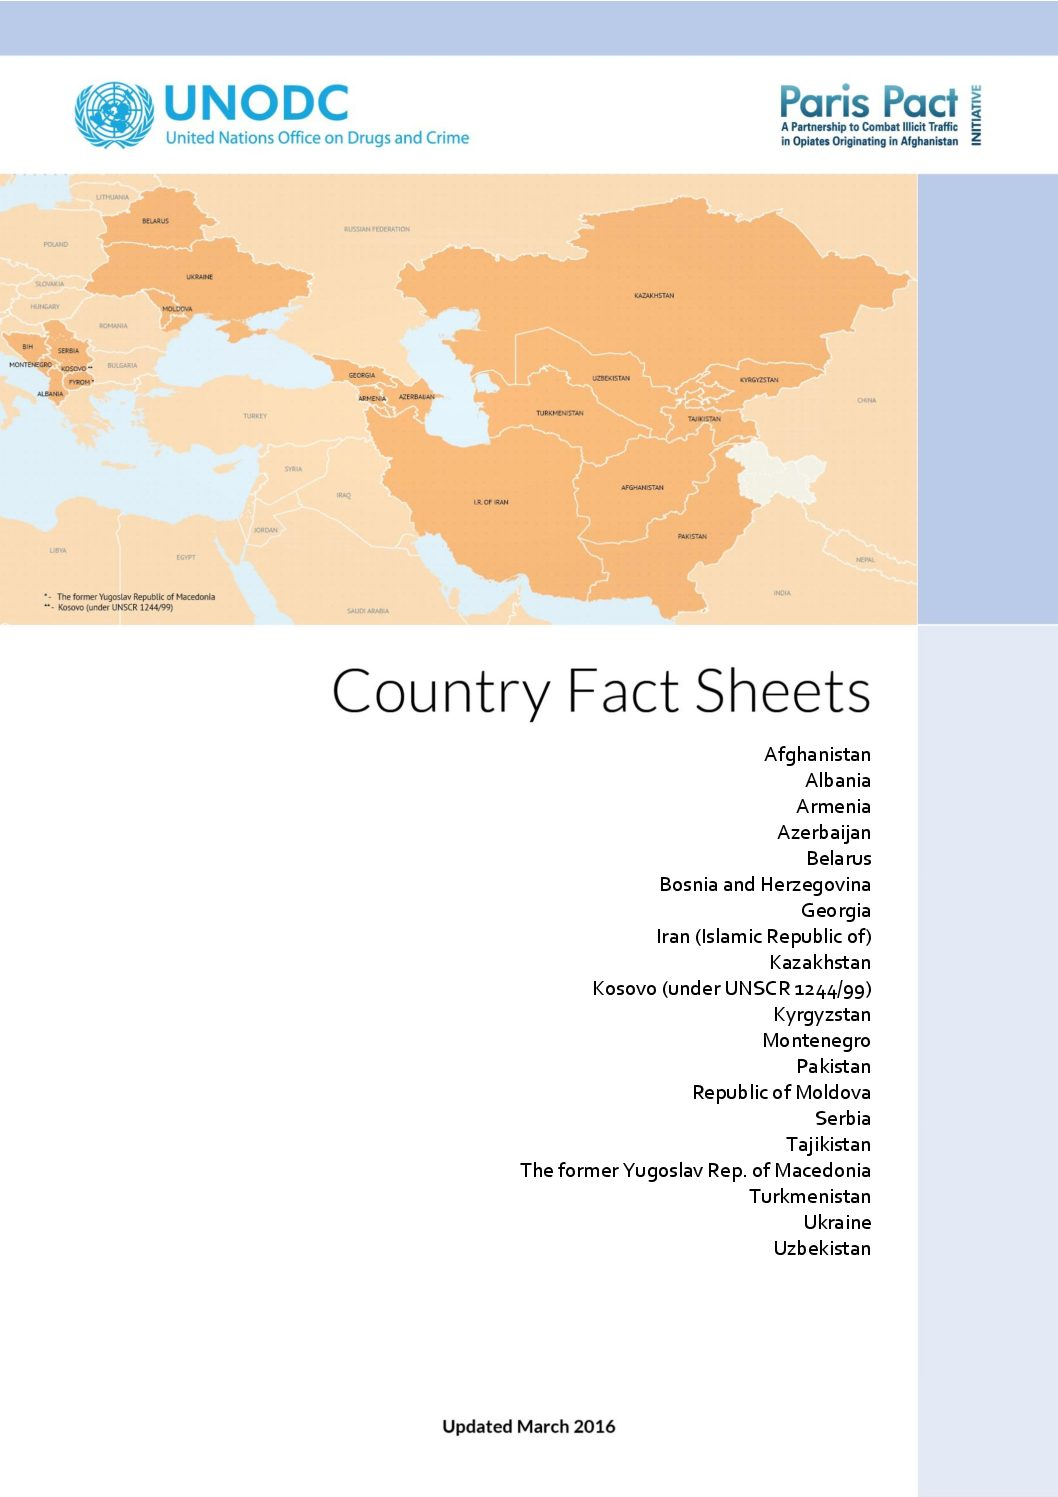 UNODC drugs. Country fact sheets.